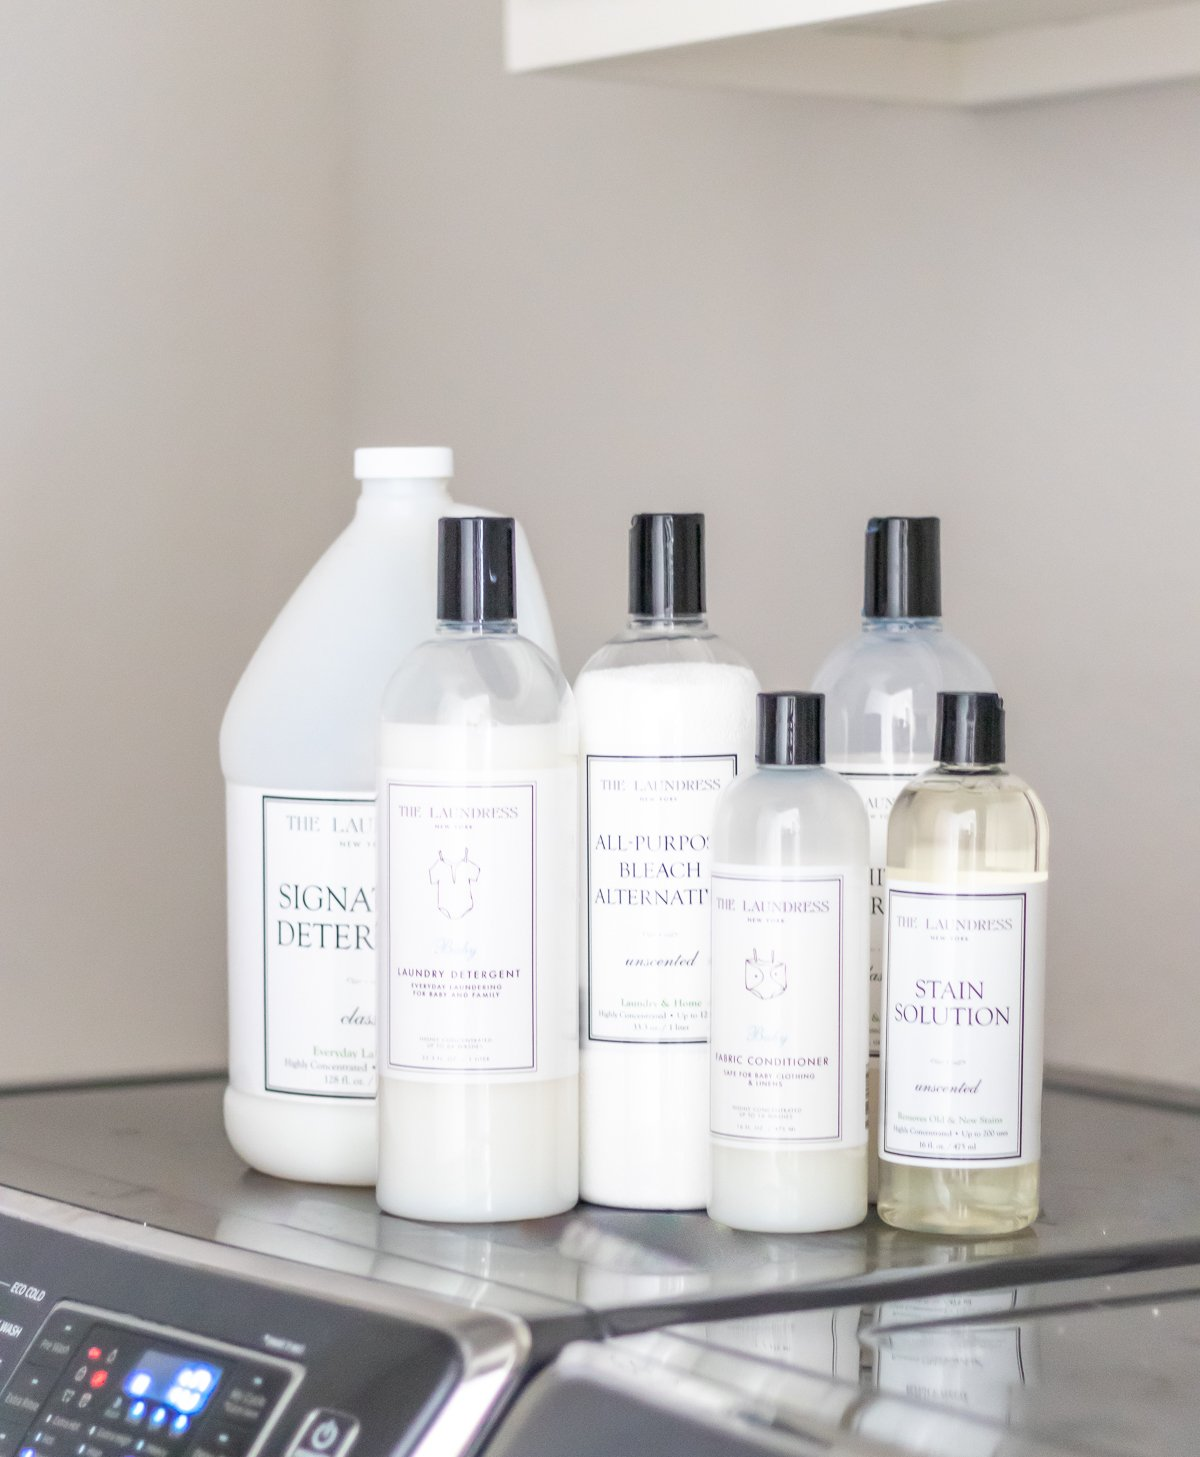 The Laundress laundry products